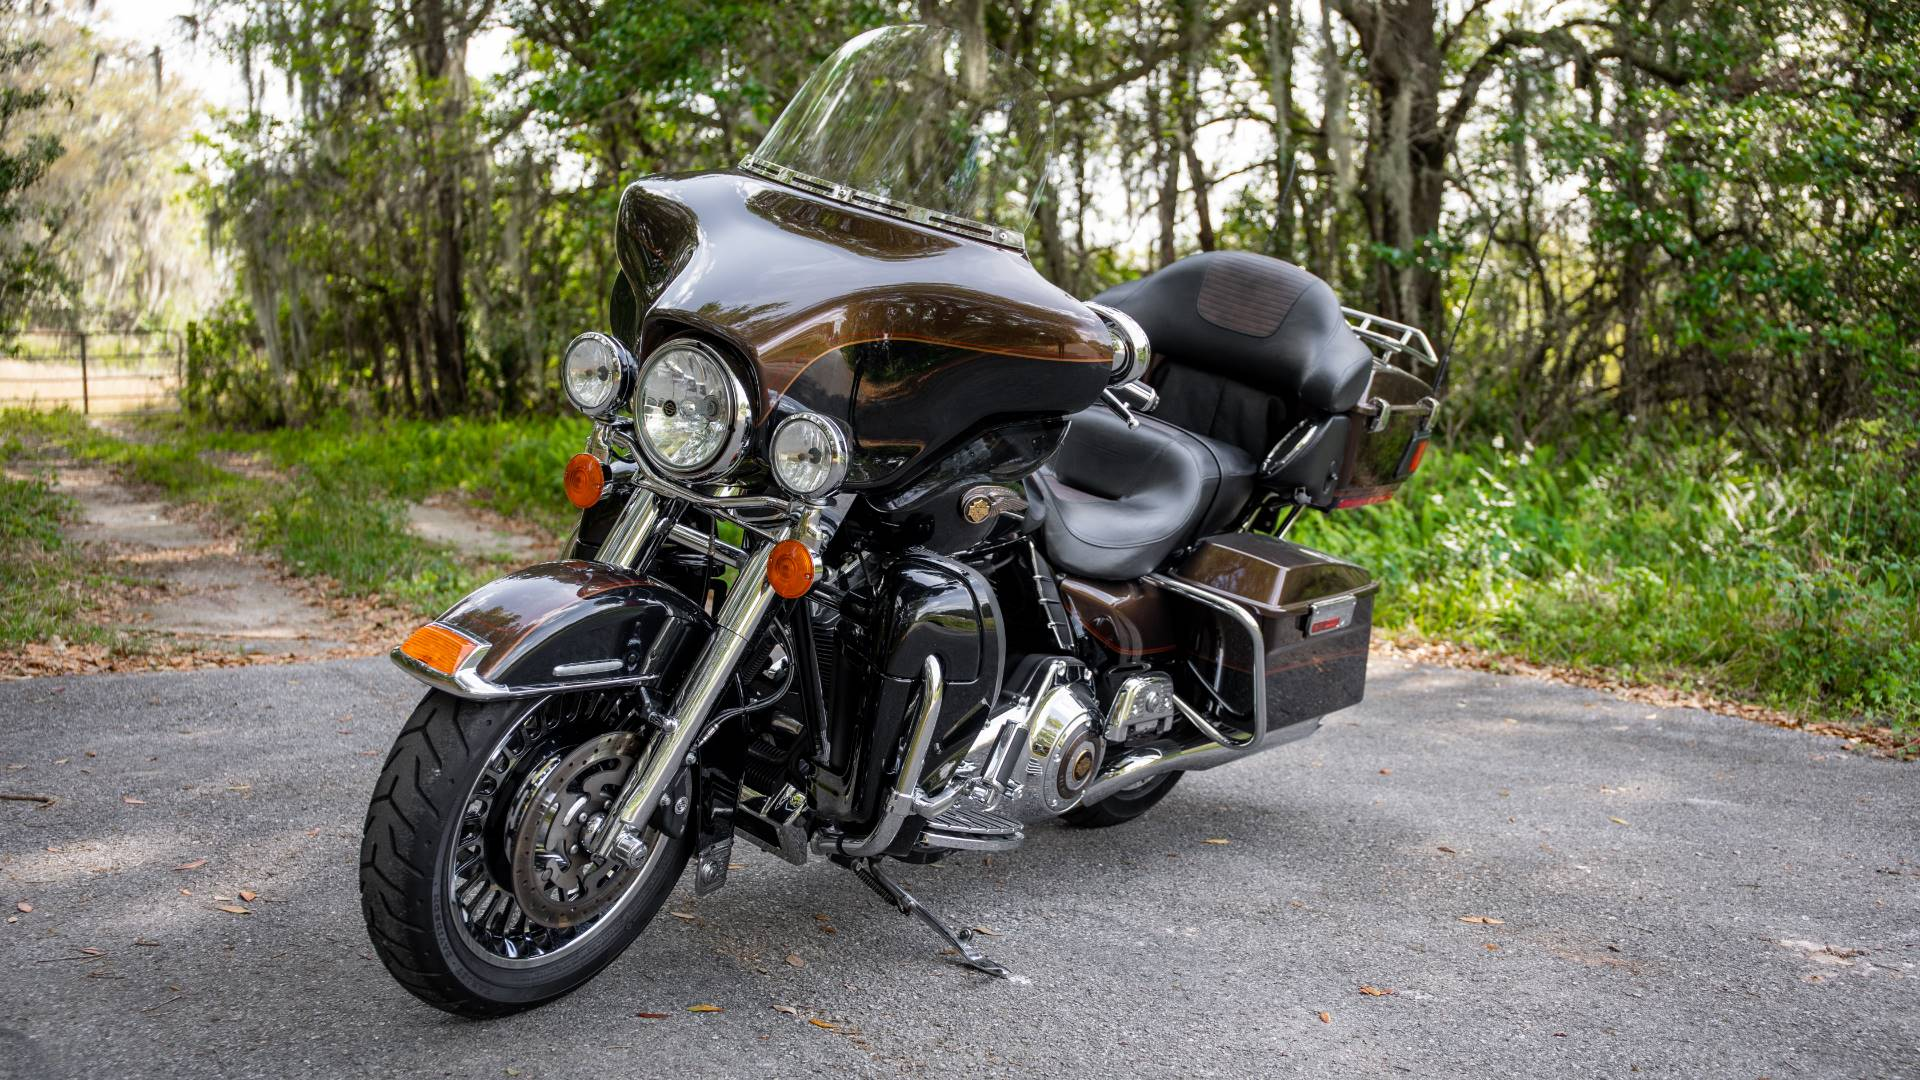 2013 Harley-Davidson Electra Glide® Ultra Limited 110th Anniversary Edition in Lakeland, Florida - Photo 30